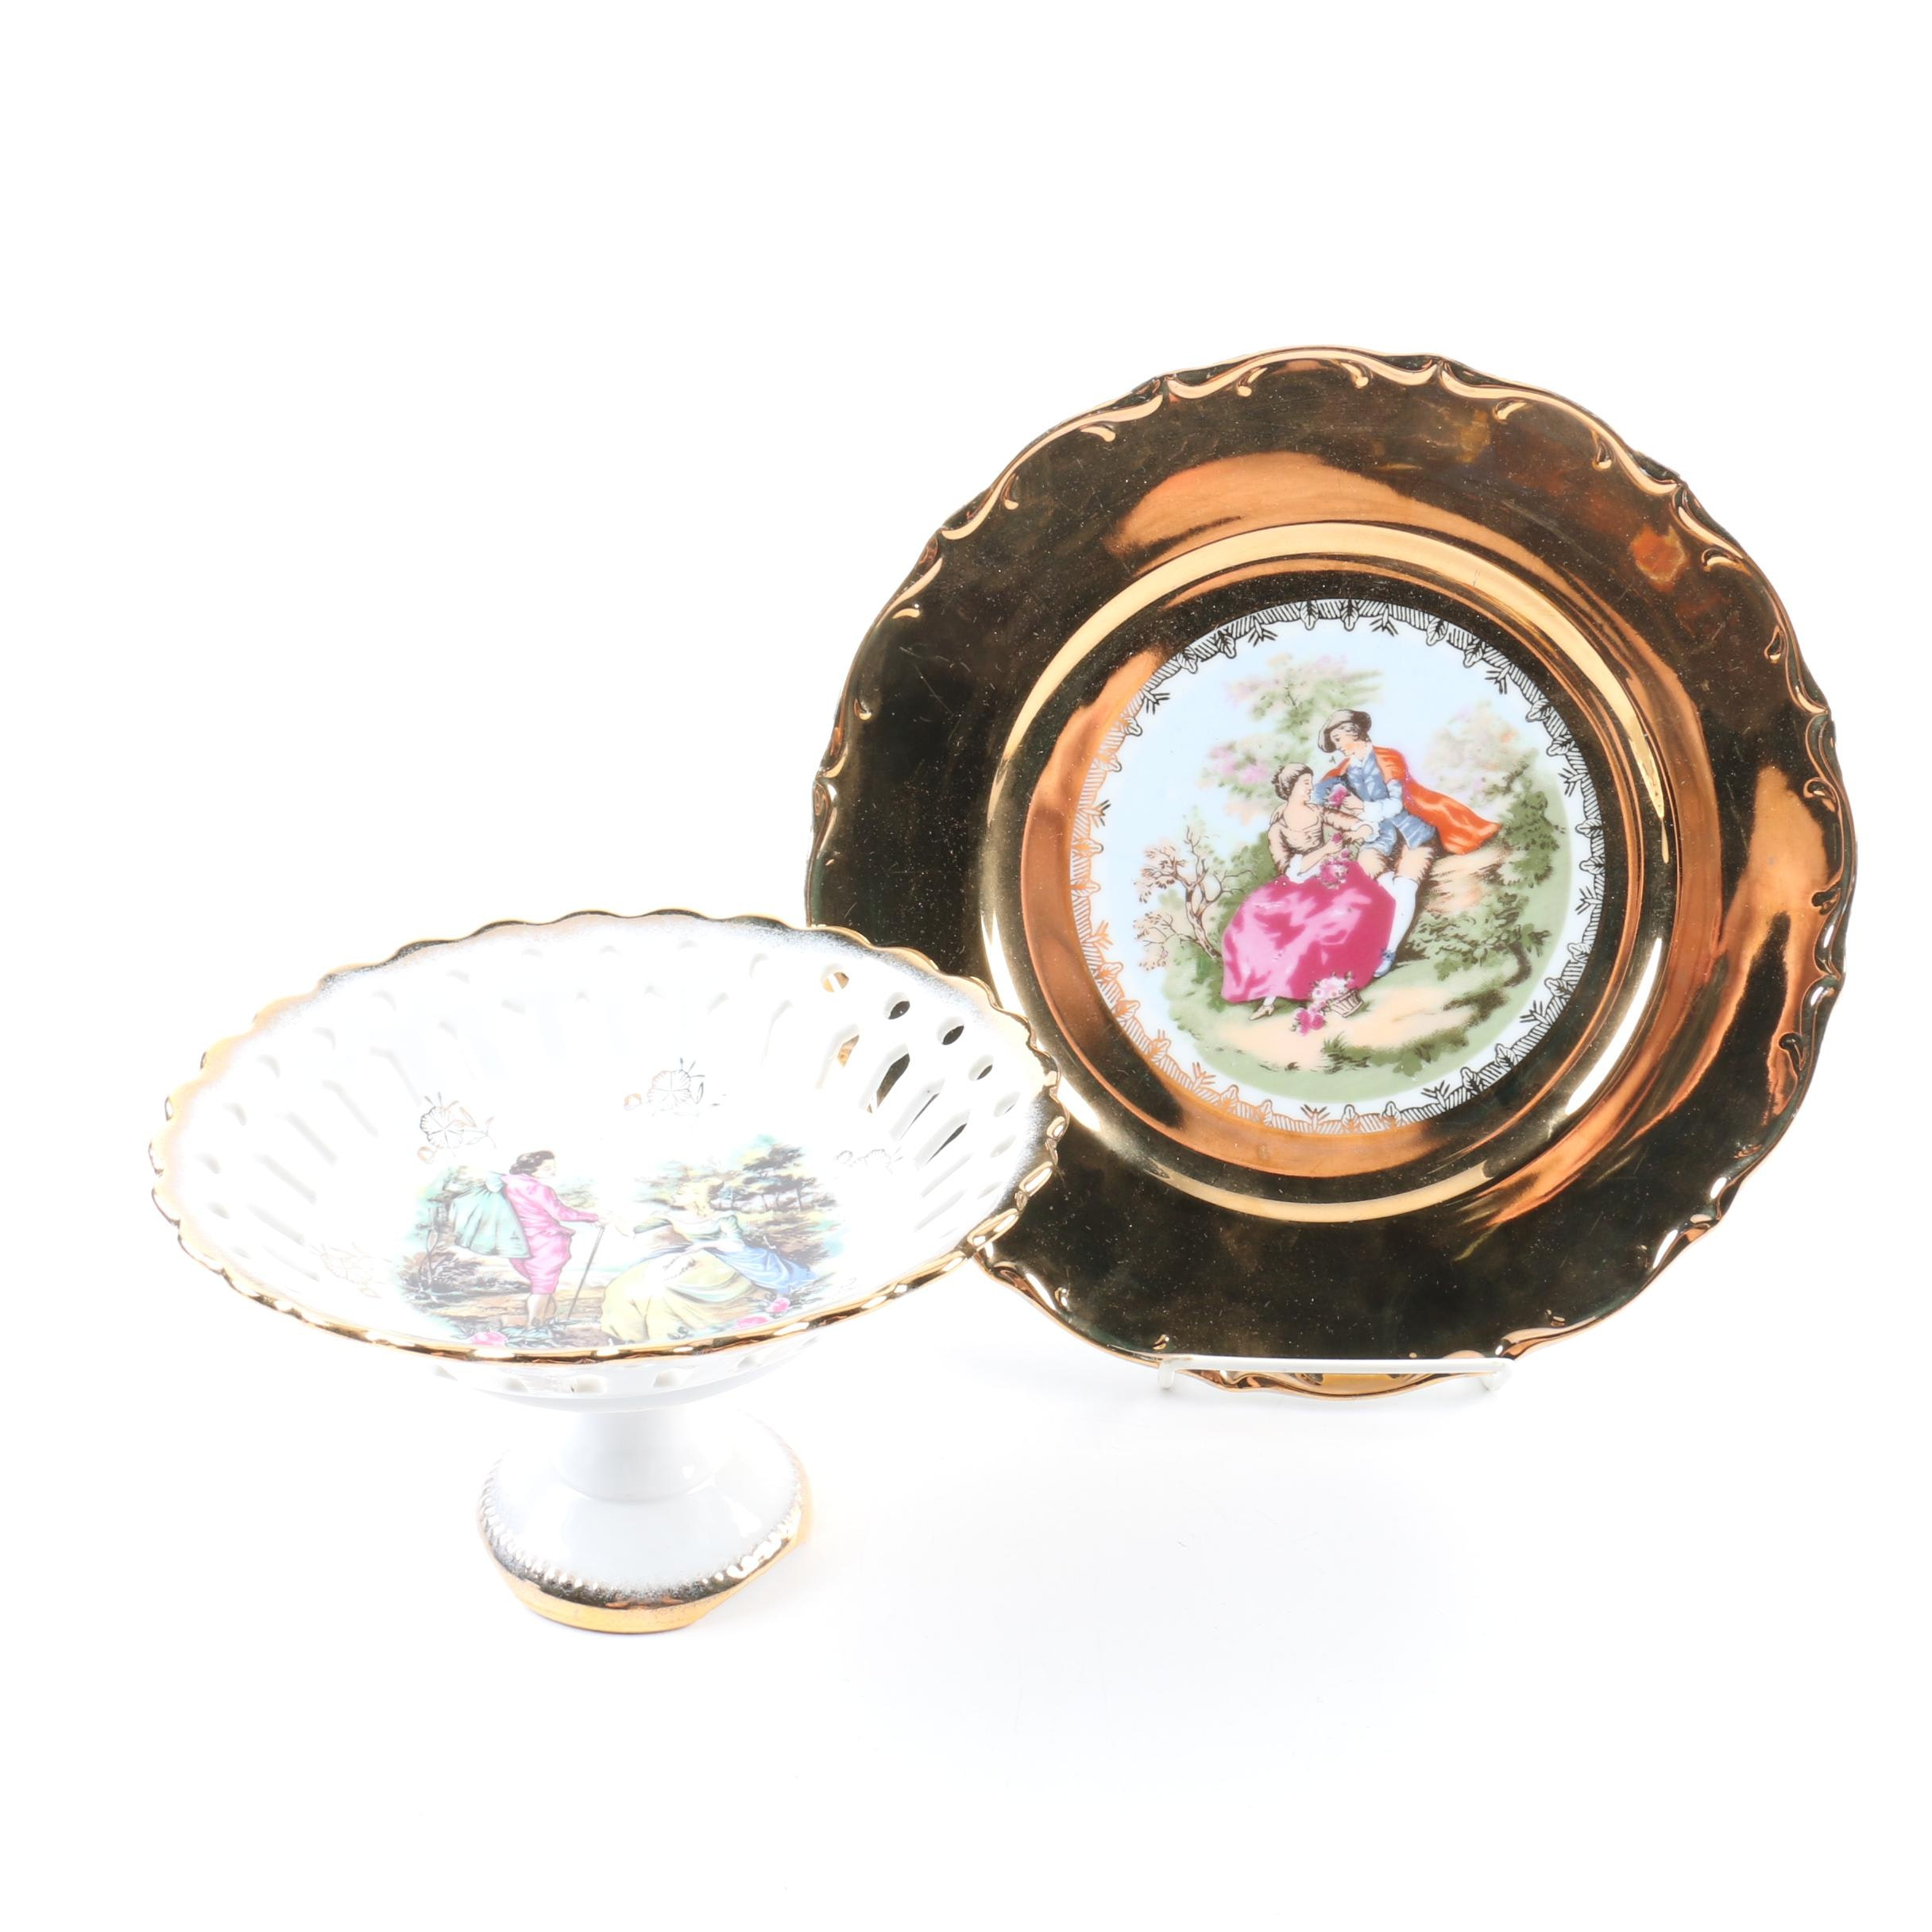 Porcelain Reticulated Footed Bowl and Decorative Plate